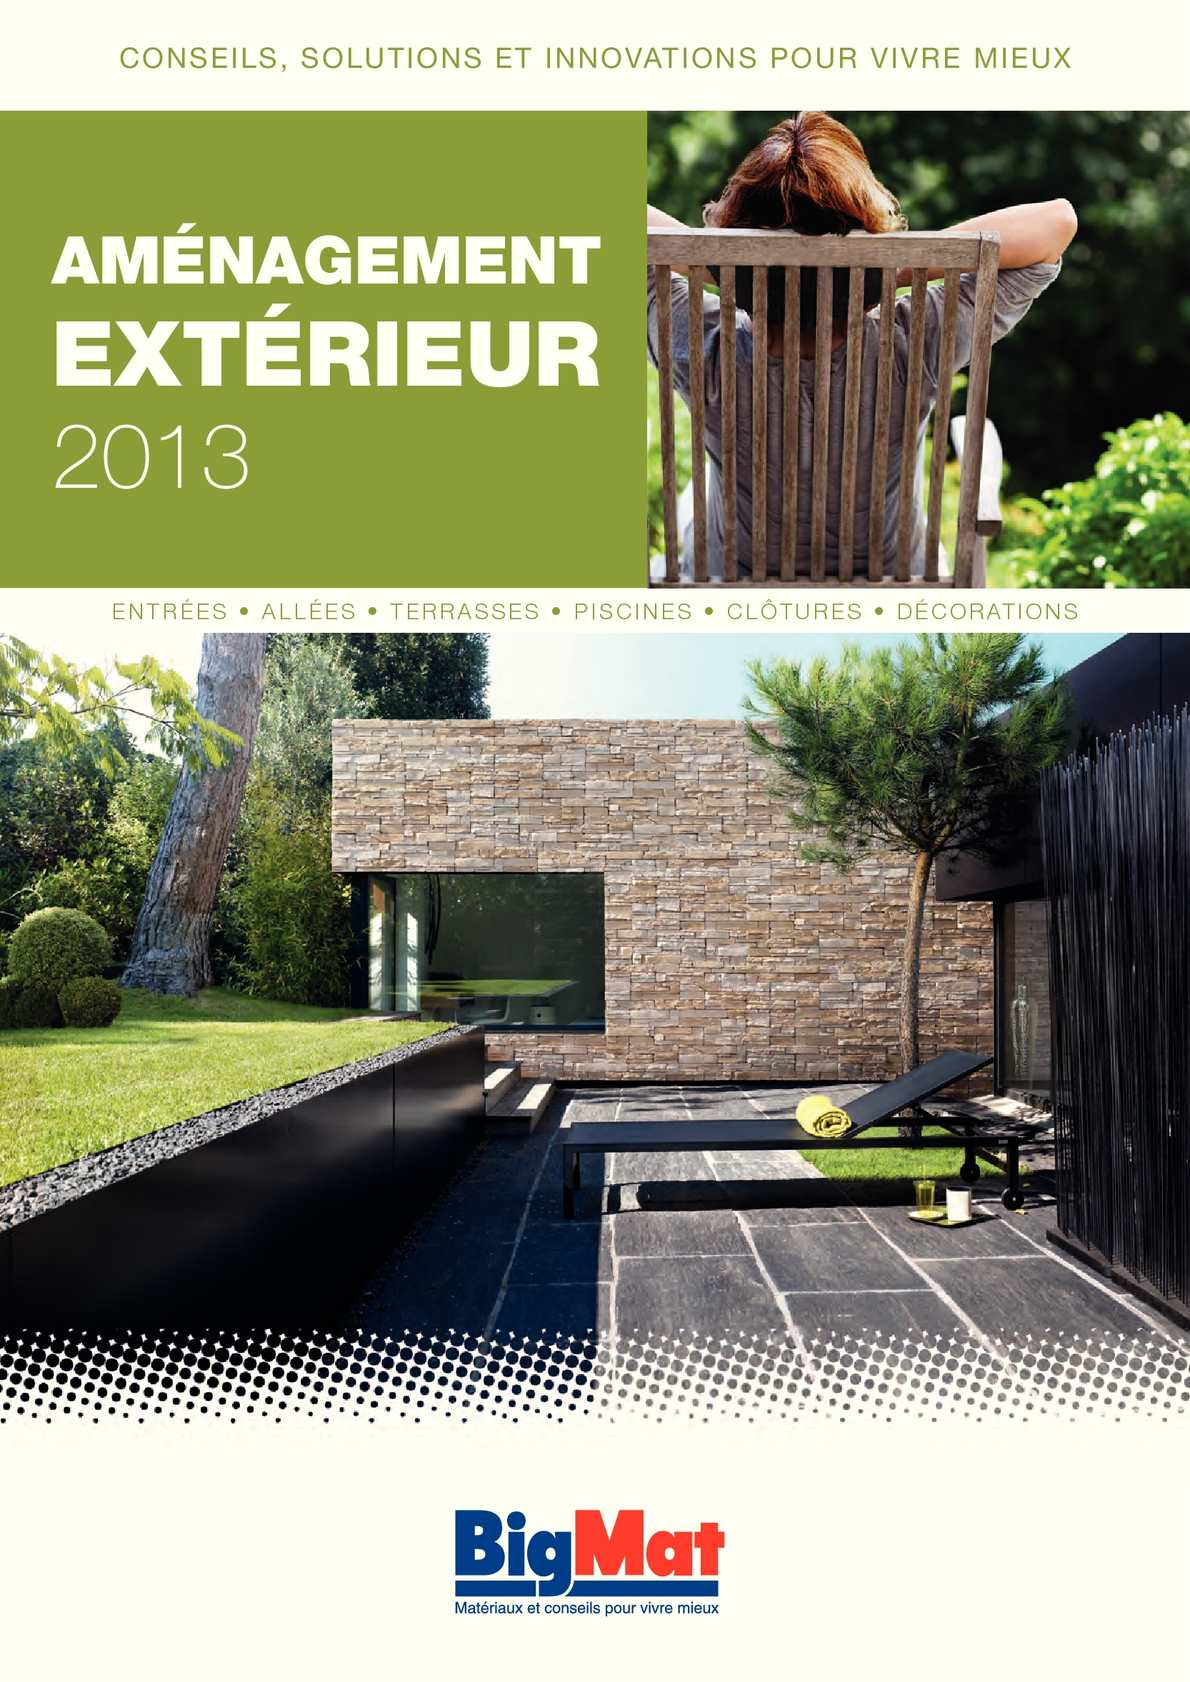 Calamo CATALOGUE BIGMAT AMENAGEMENT EXTERIEUR 2013